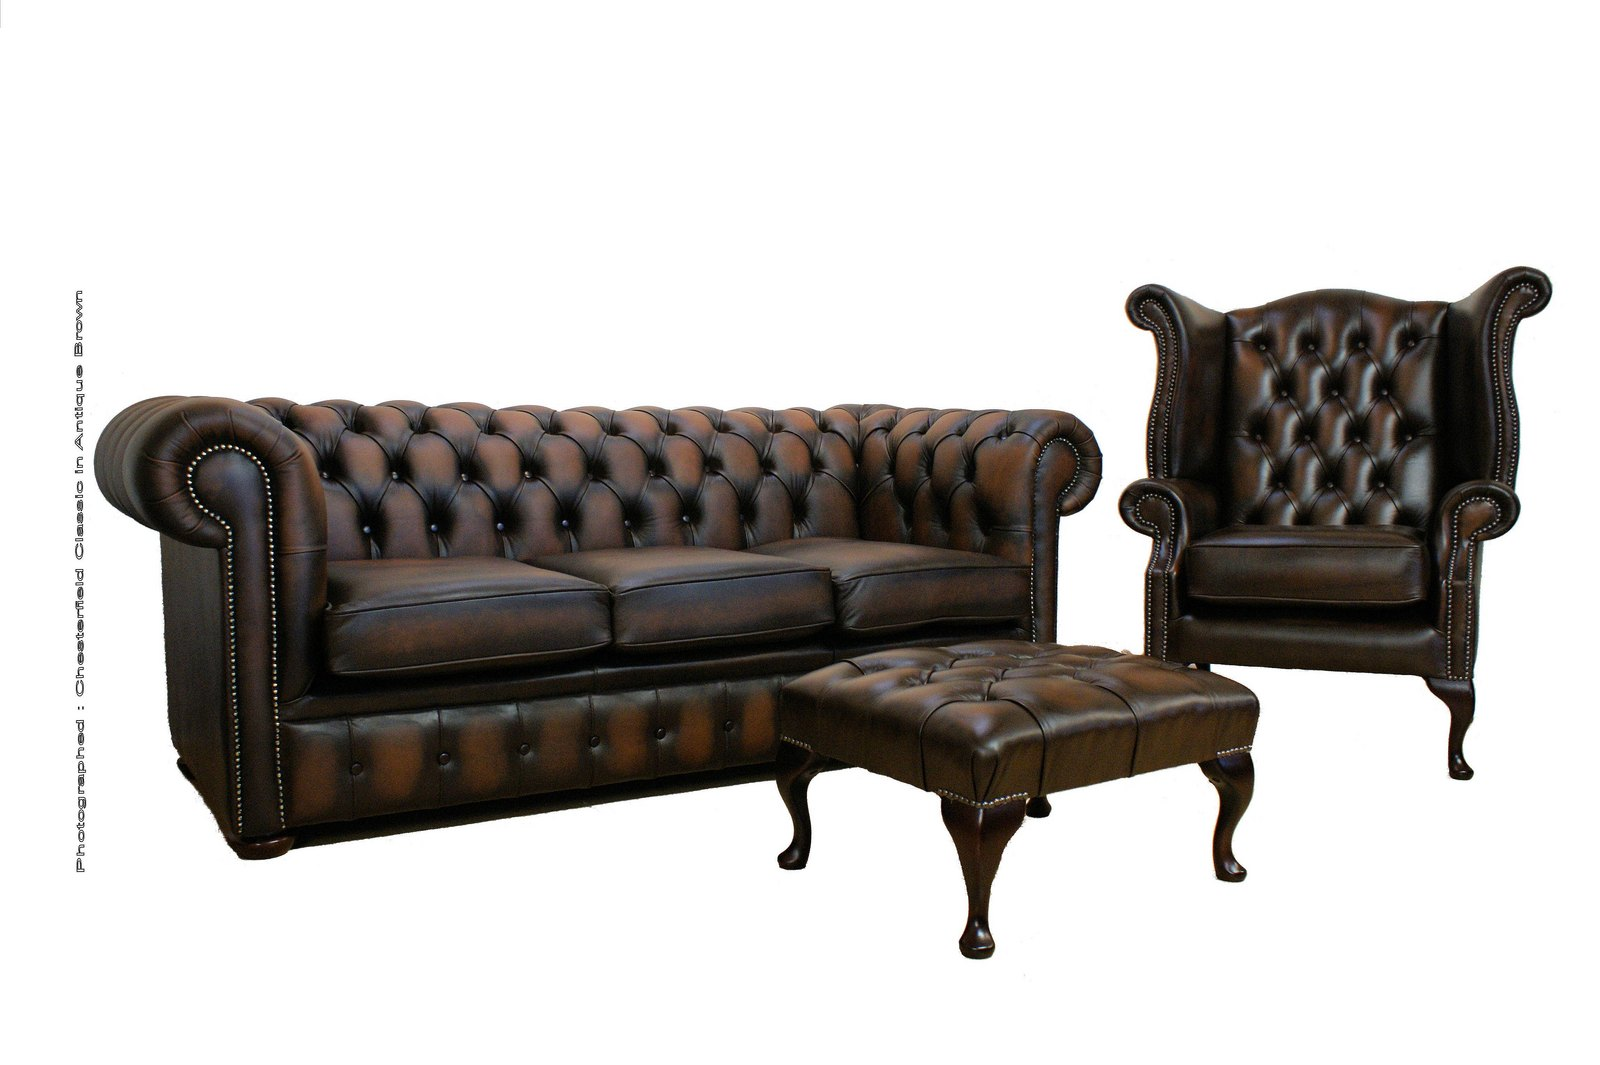 ... For Chesterfield Sofas That Are For Sale Is The Best Option For You, If  You Want To Buy A Chesterfield Sofa Within A Limited Budget. The Second Hand  ...